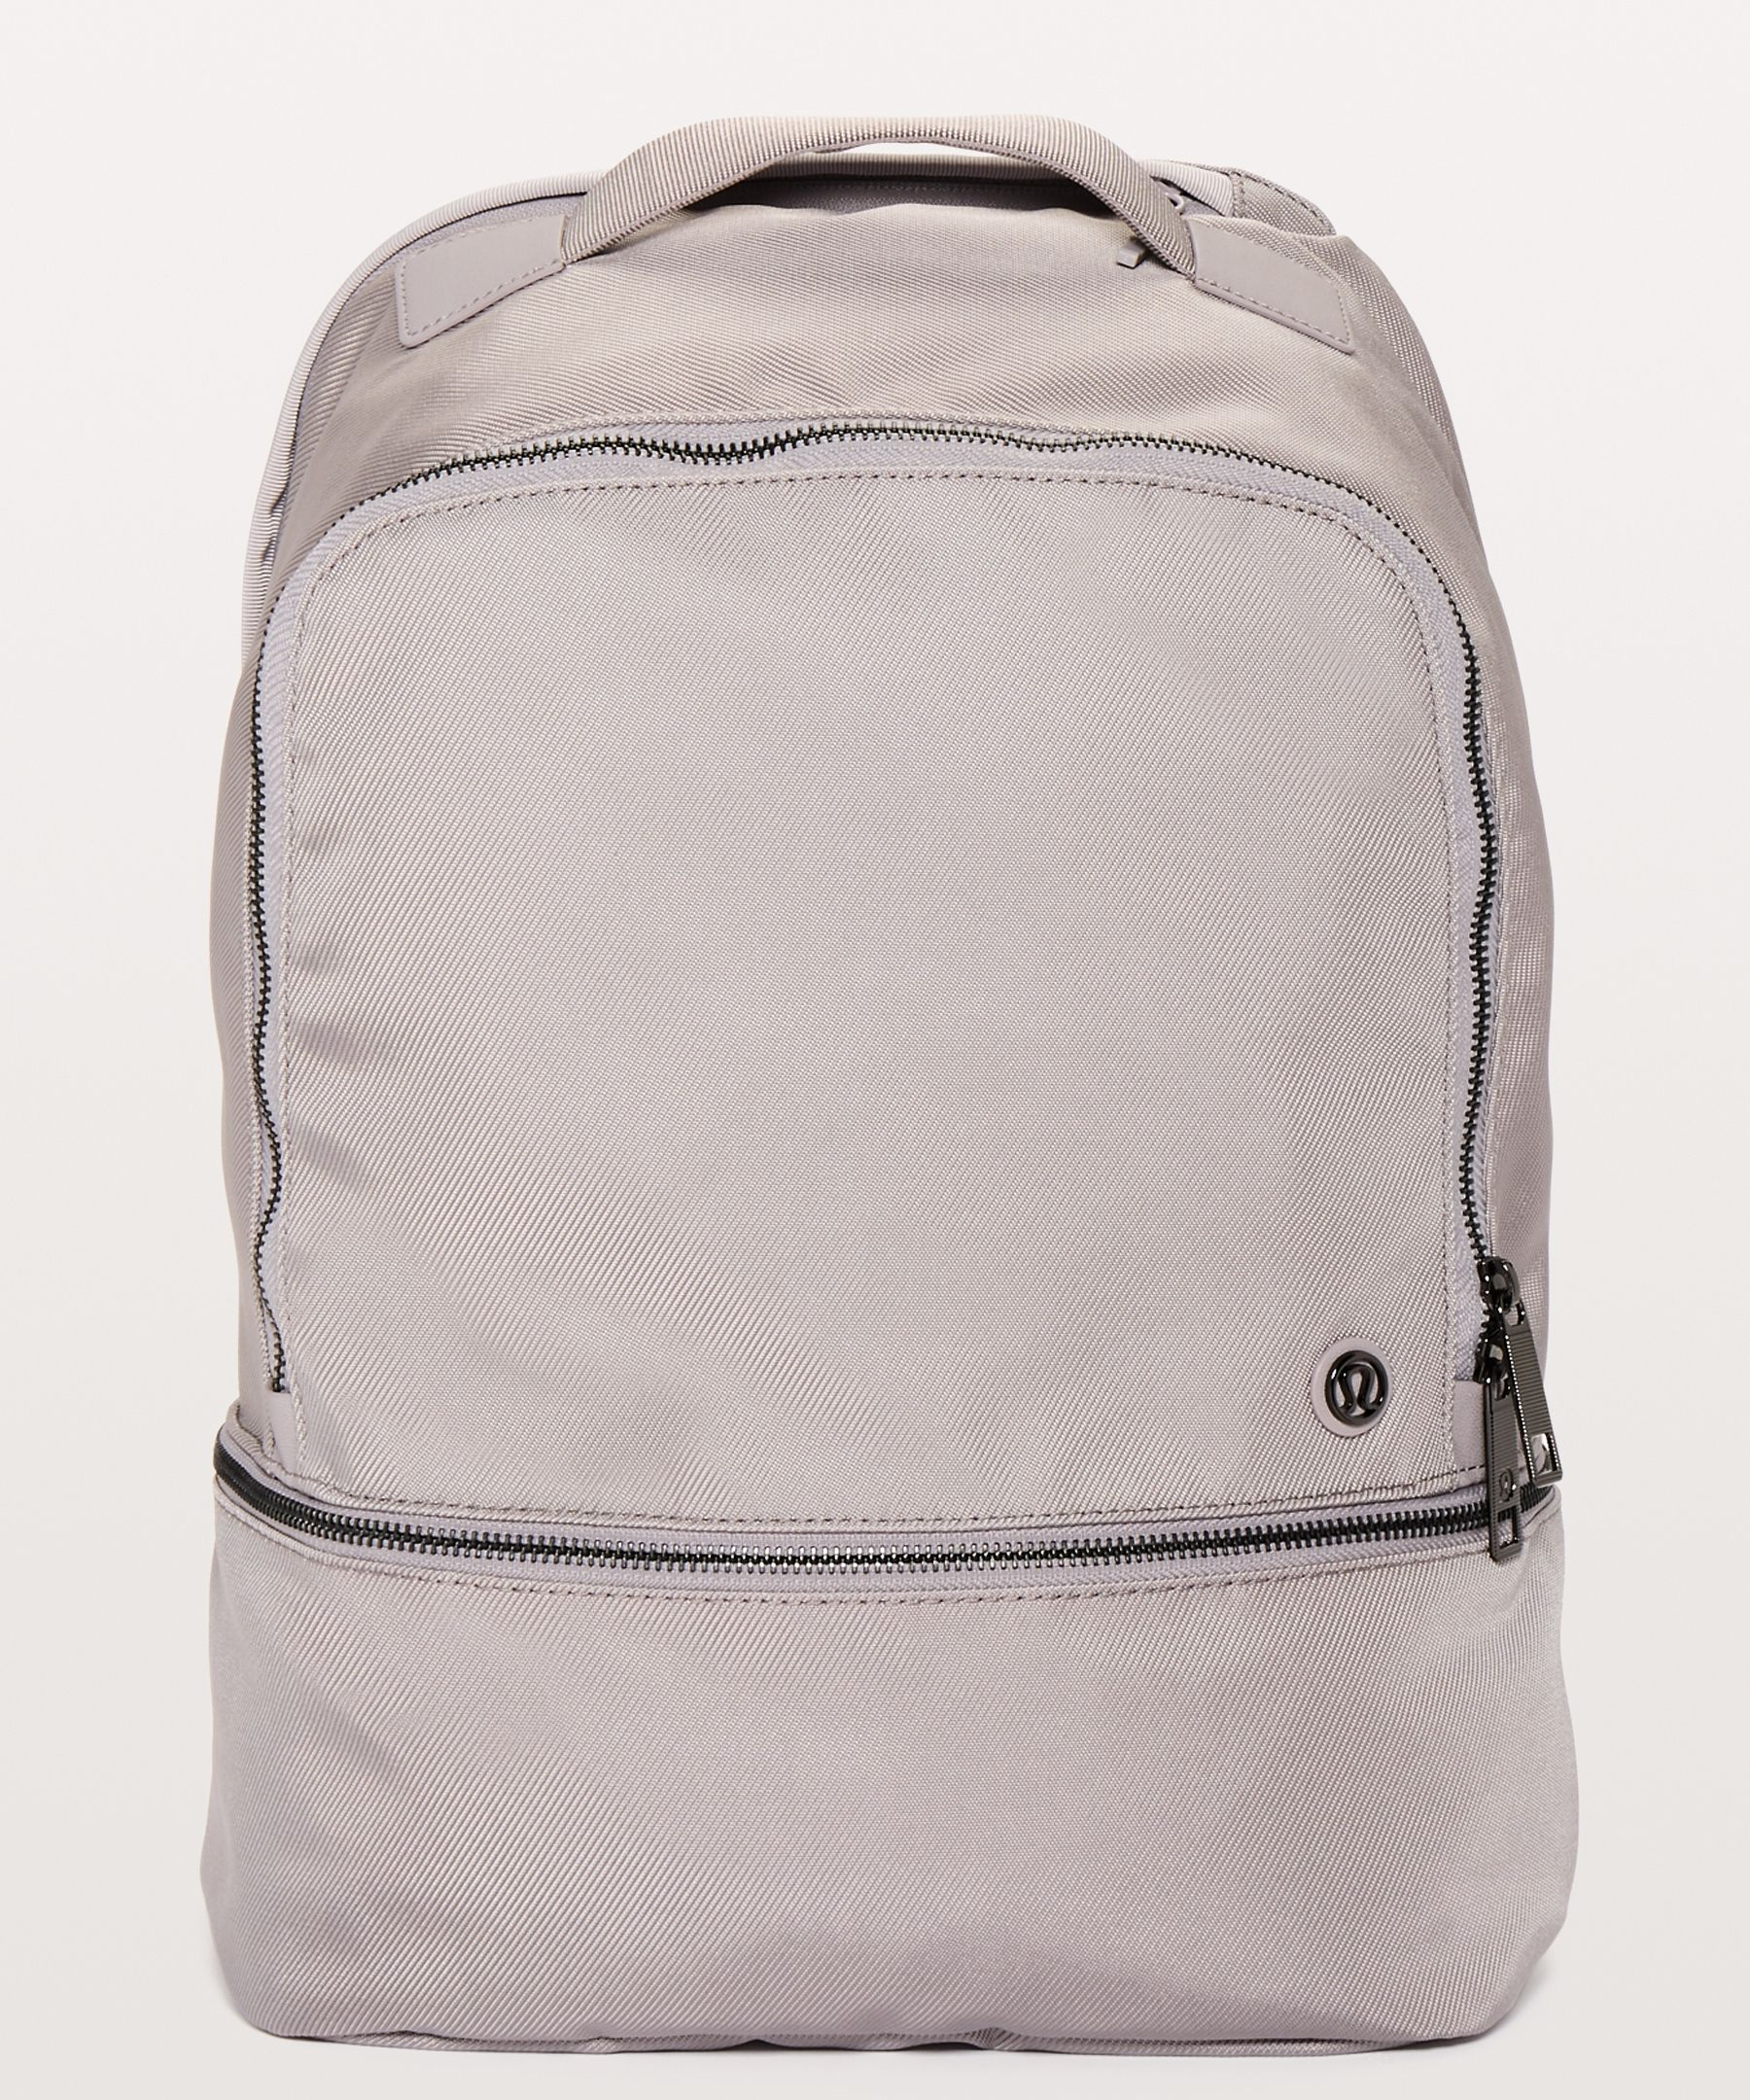 dcaad60468 Best Gym Bags Sorted by Your Needs